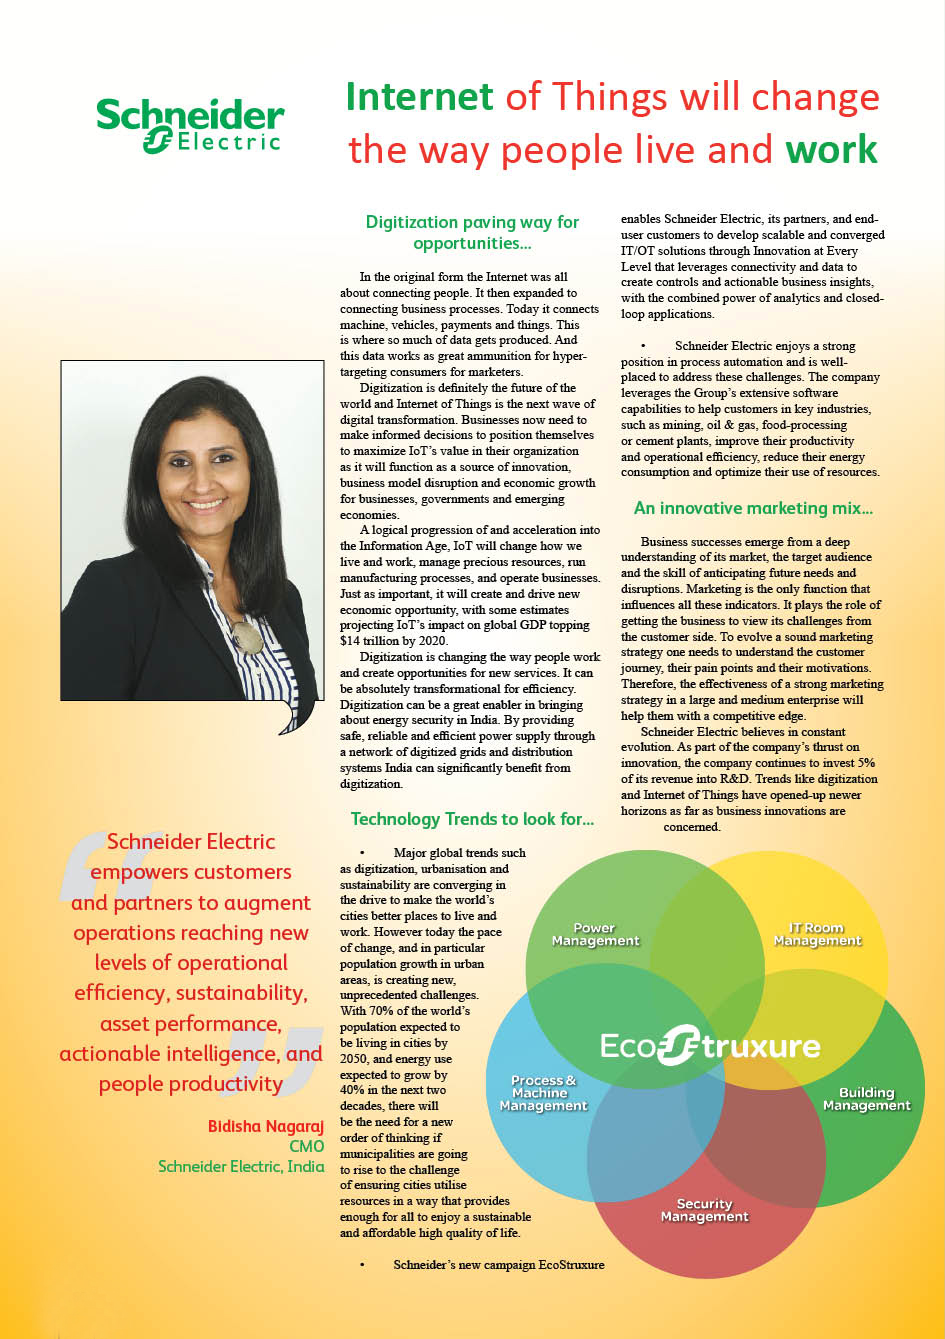 Schneider Electric India : Internet of Things will change the way people live and work